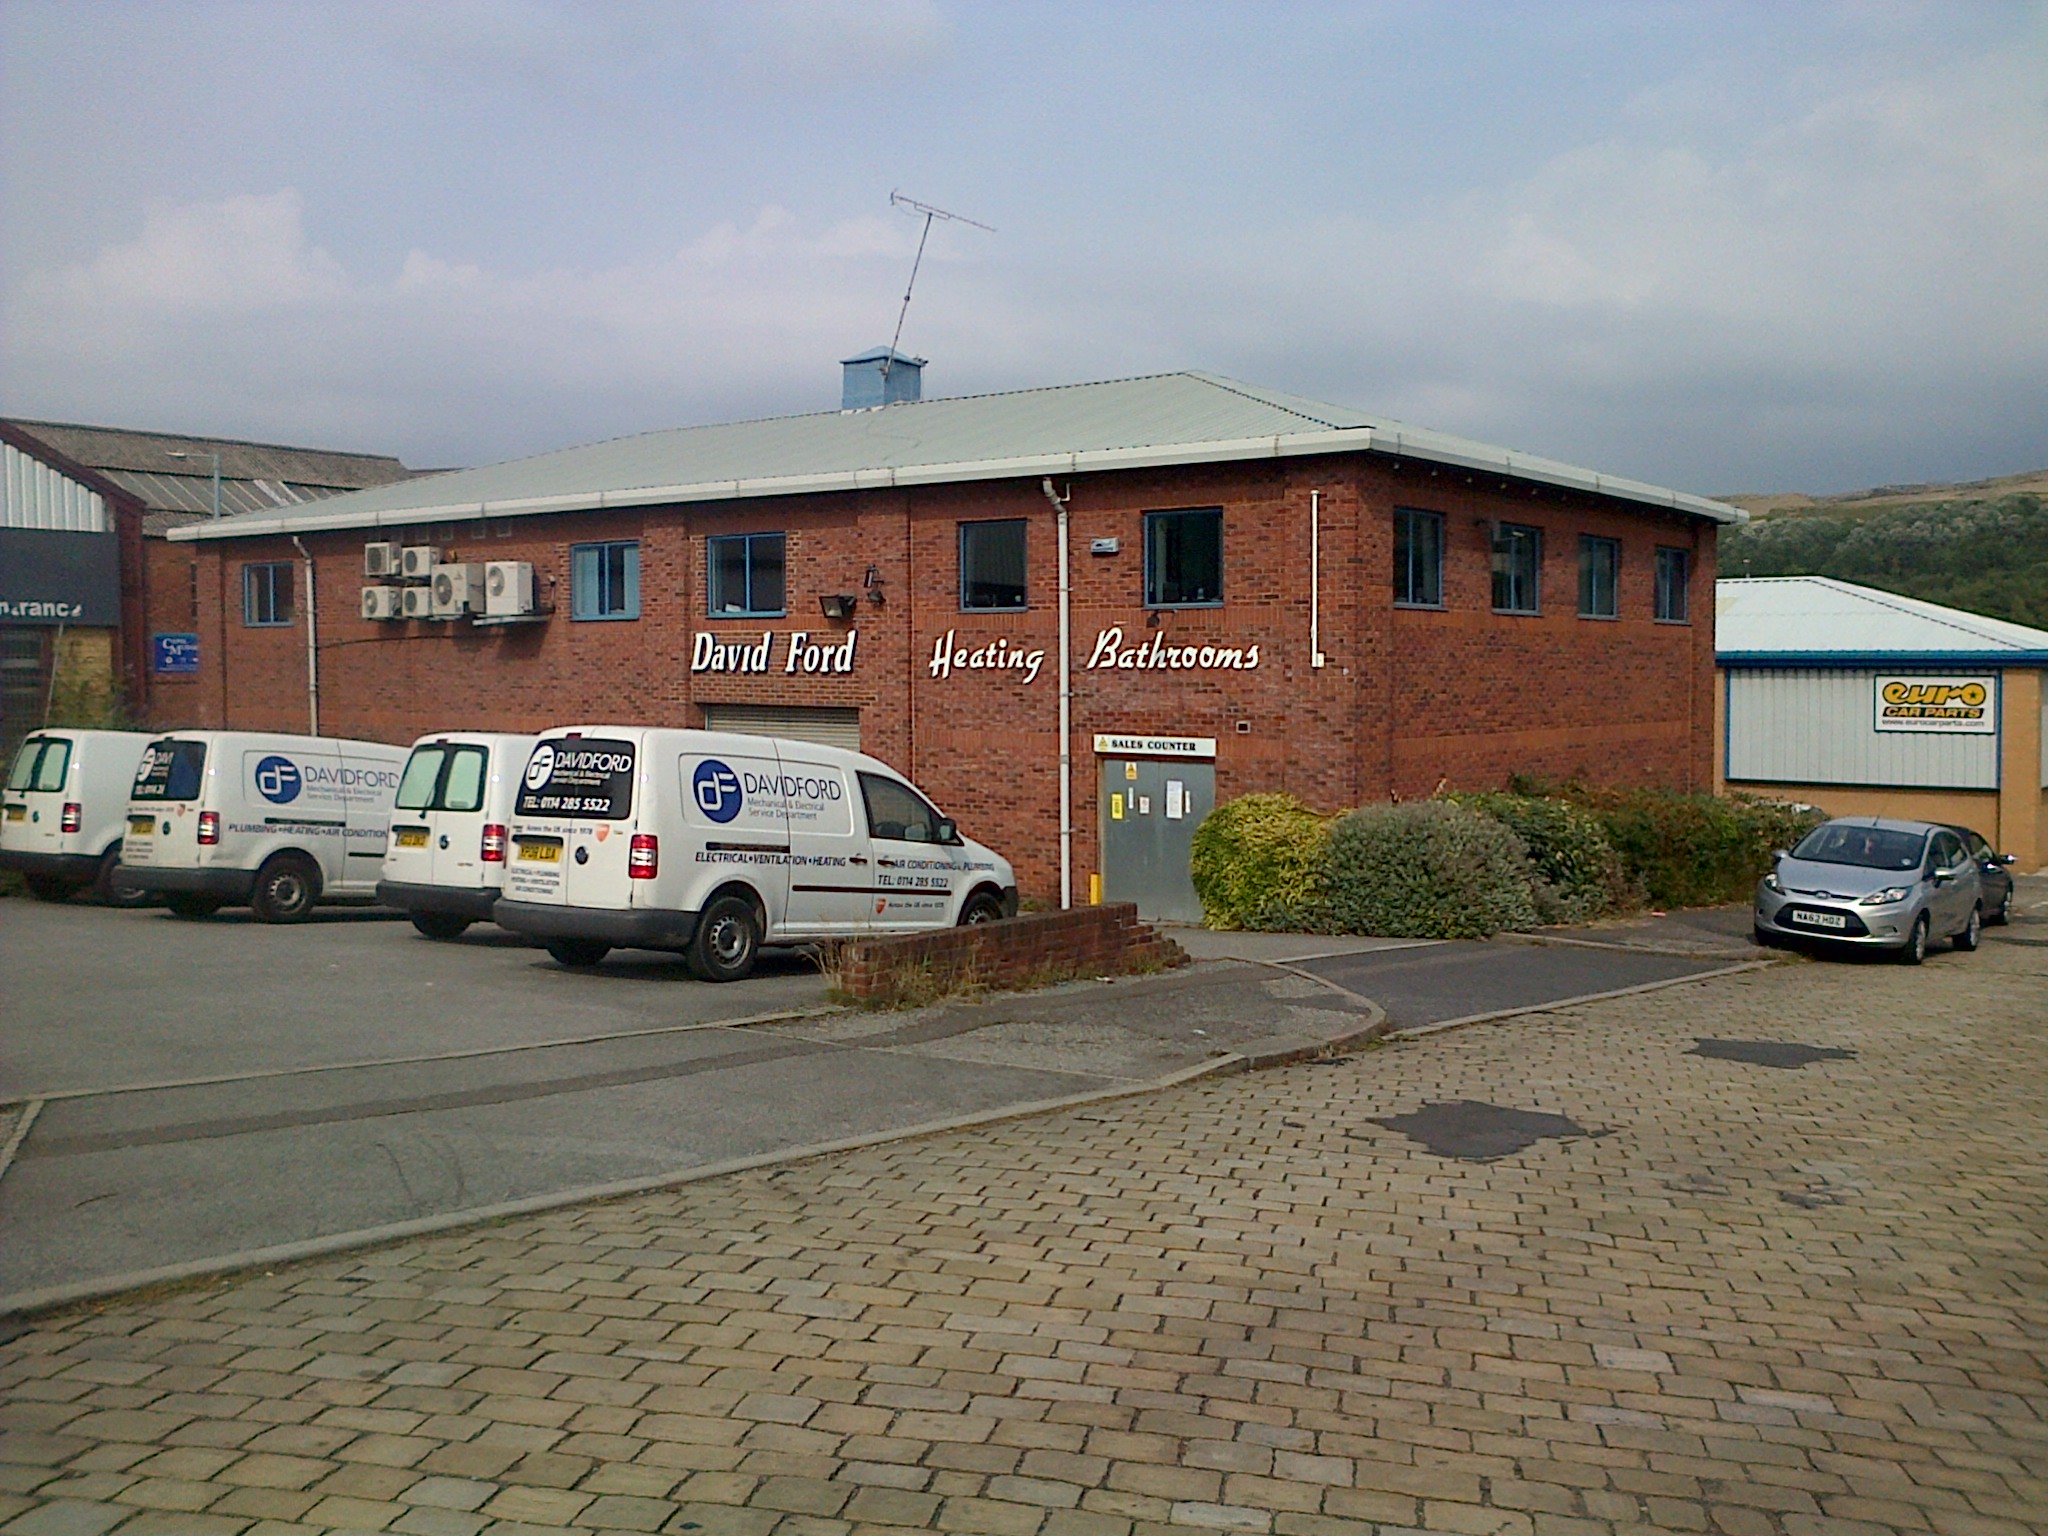 71 industrial properties for sale in sheffield uk page for Timetable 85 sheffield